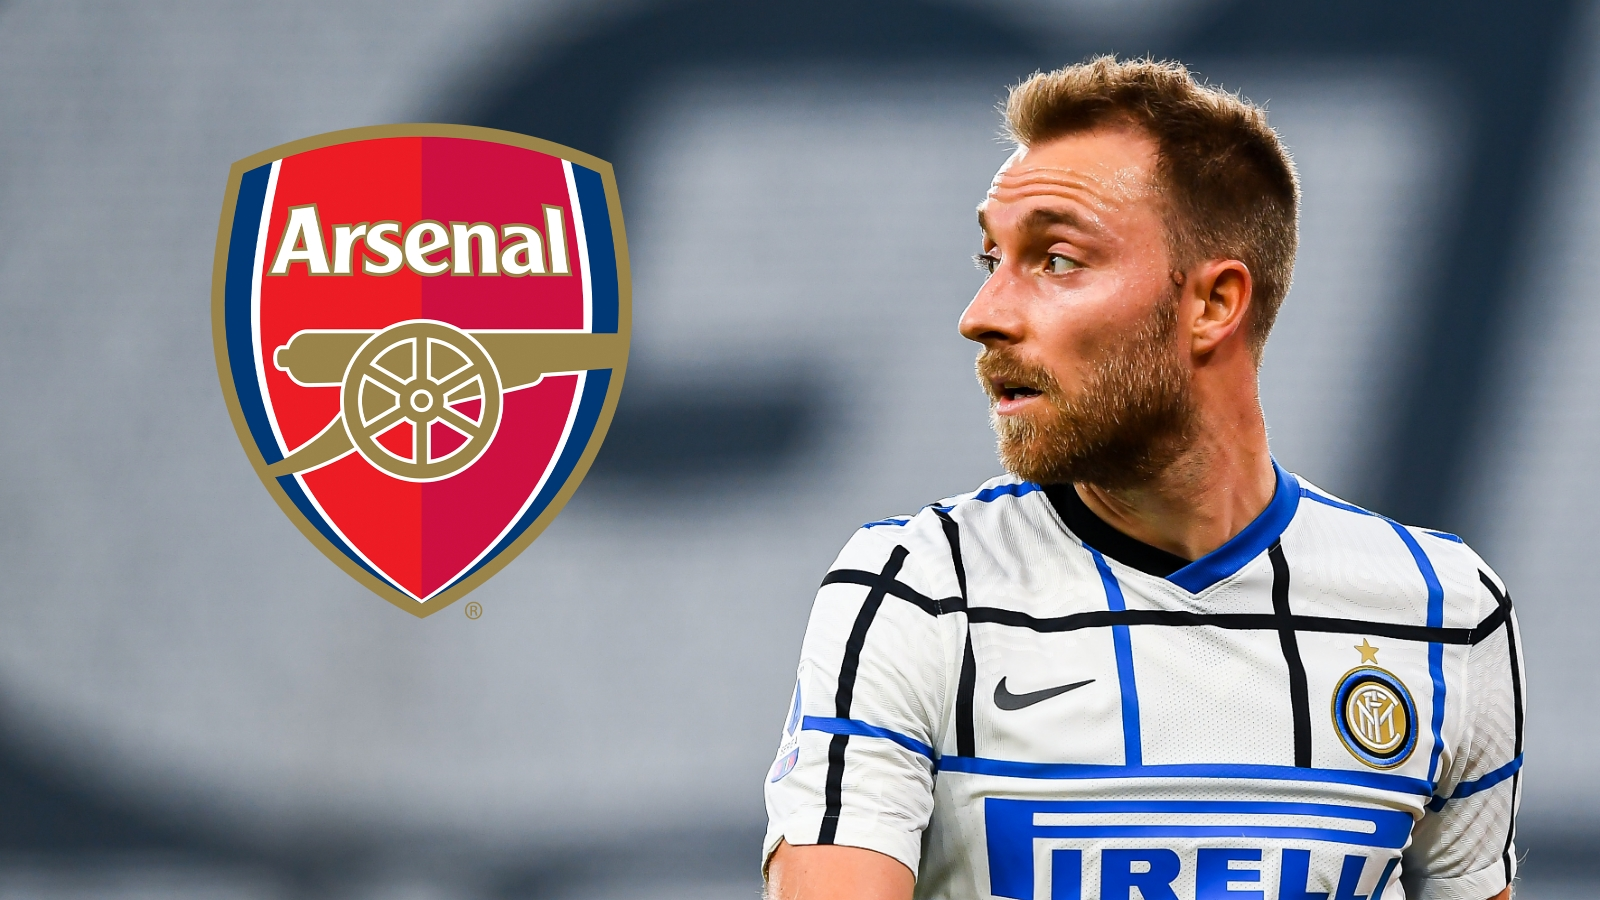 Transfer news and rumours LIVE: Arsenal offered Inter outcast Eriksen